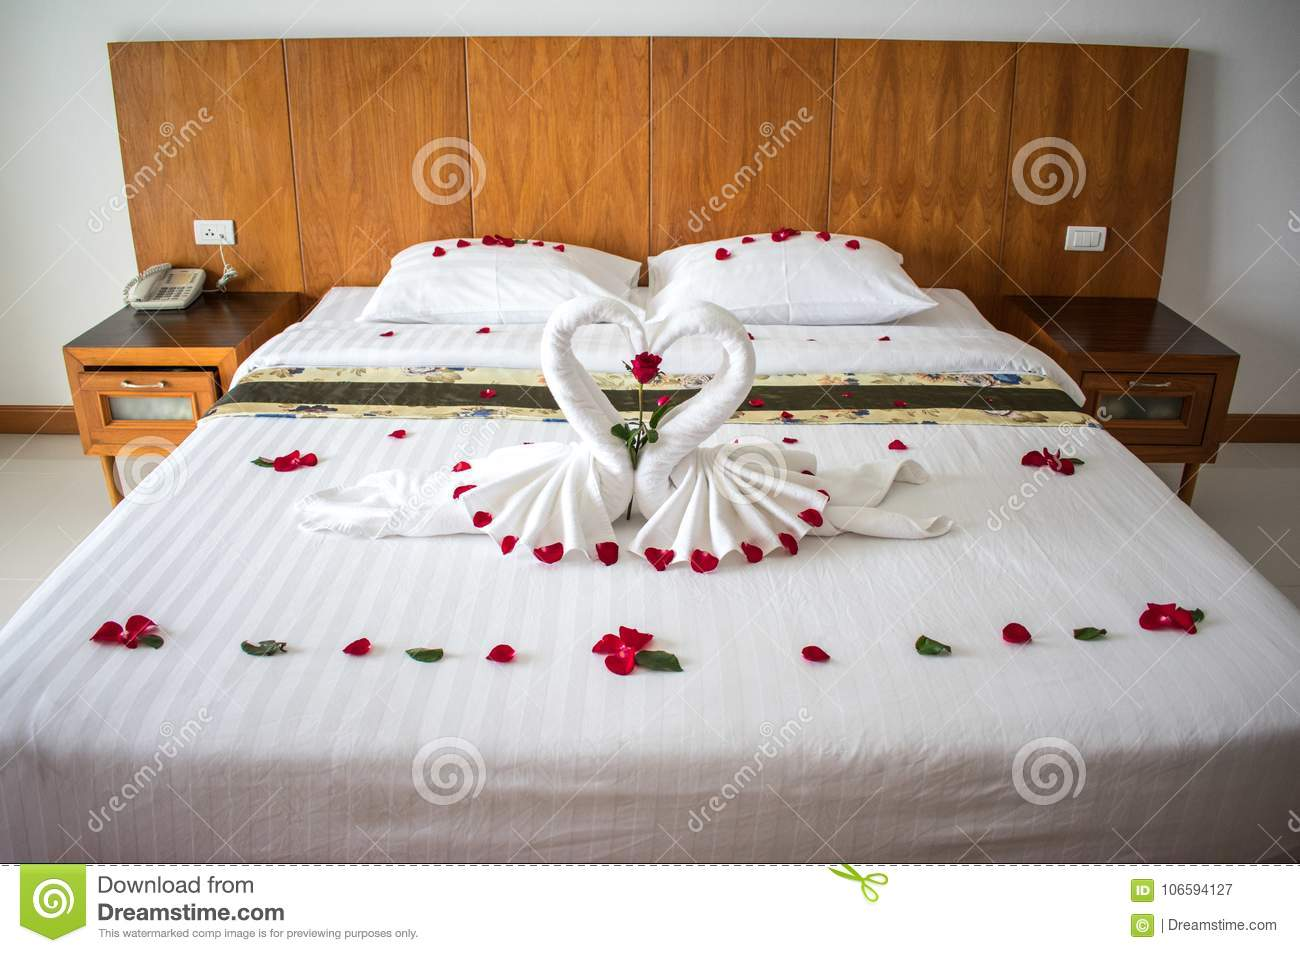 bed in asian hotel room for lovers stock image image of bedroom rh dreamstime com